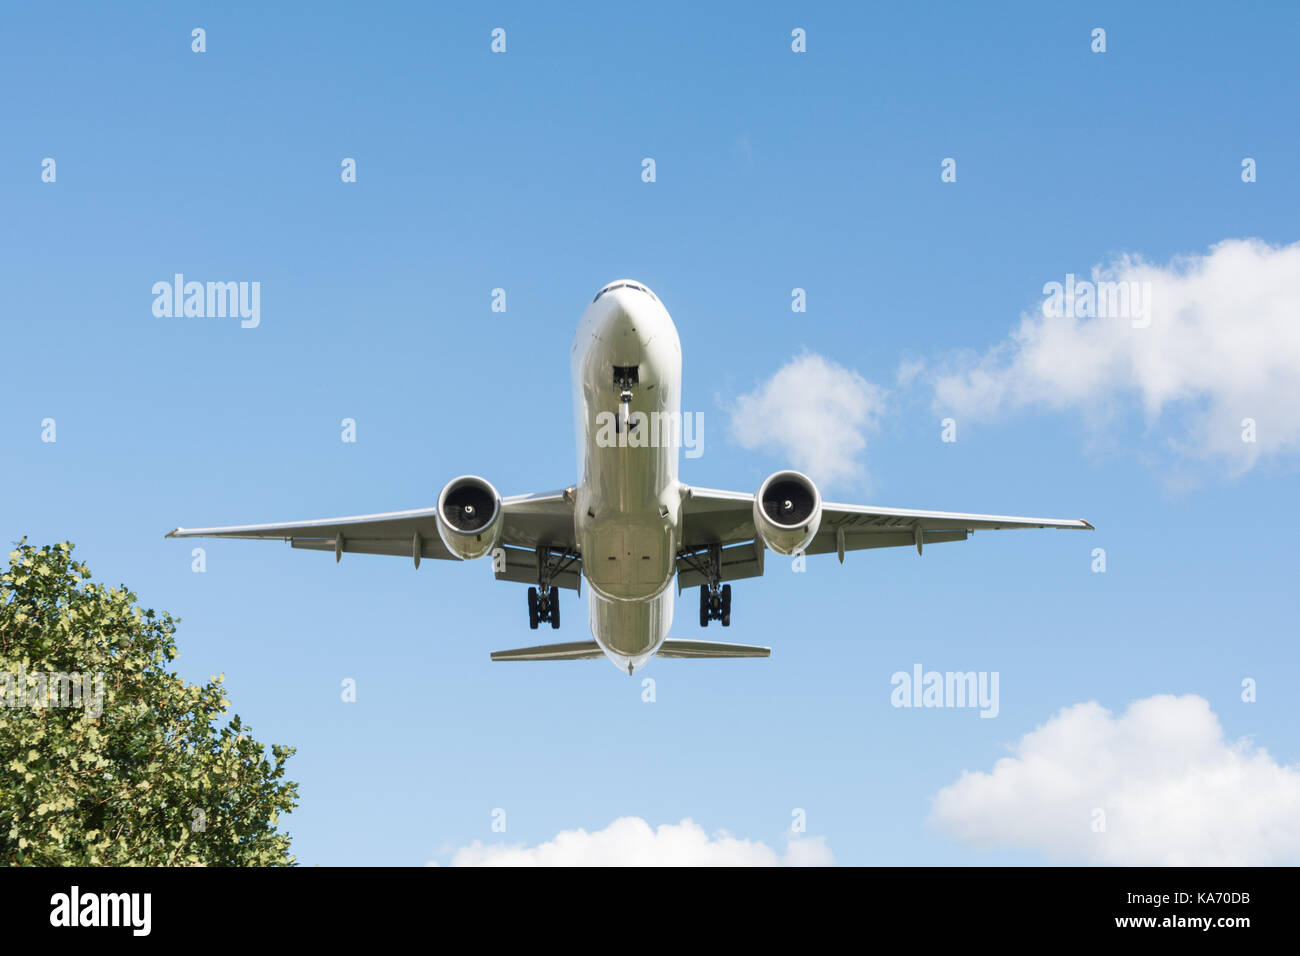 A low flying jet aircraft descending towards Heathrow Airport, Terminal 4, in Hounslow, Middlesex, UK. - Stock Image